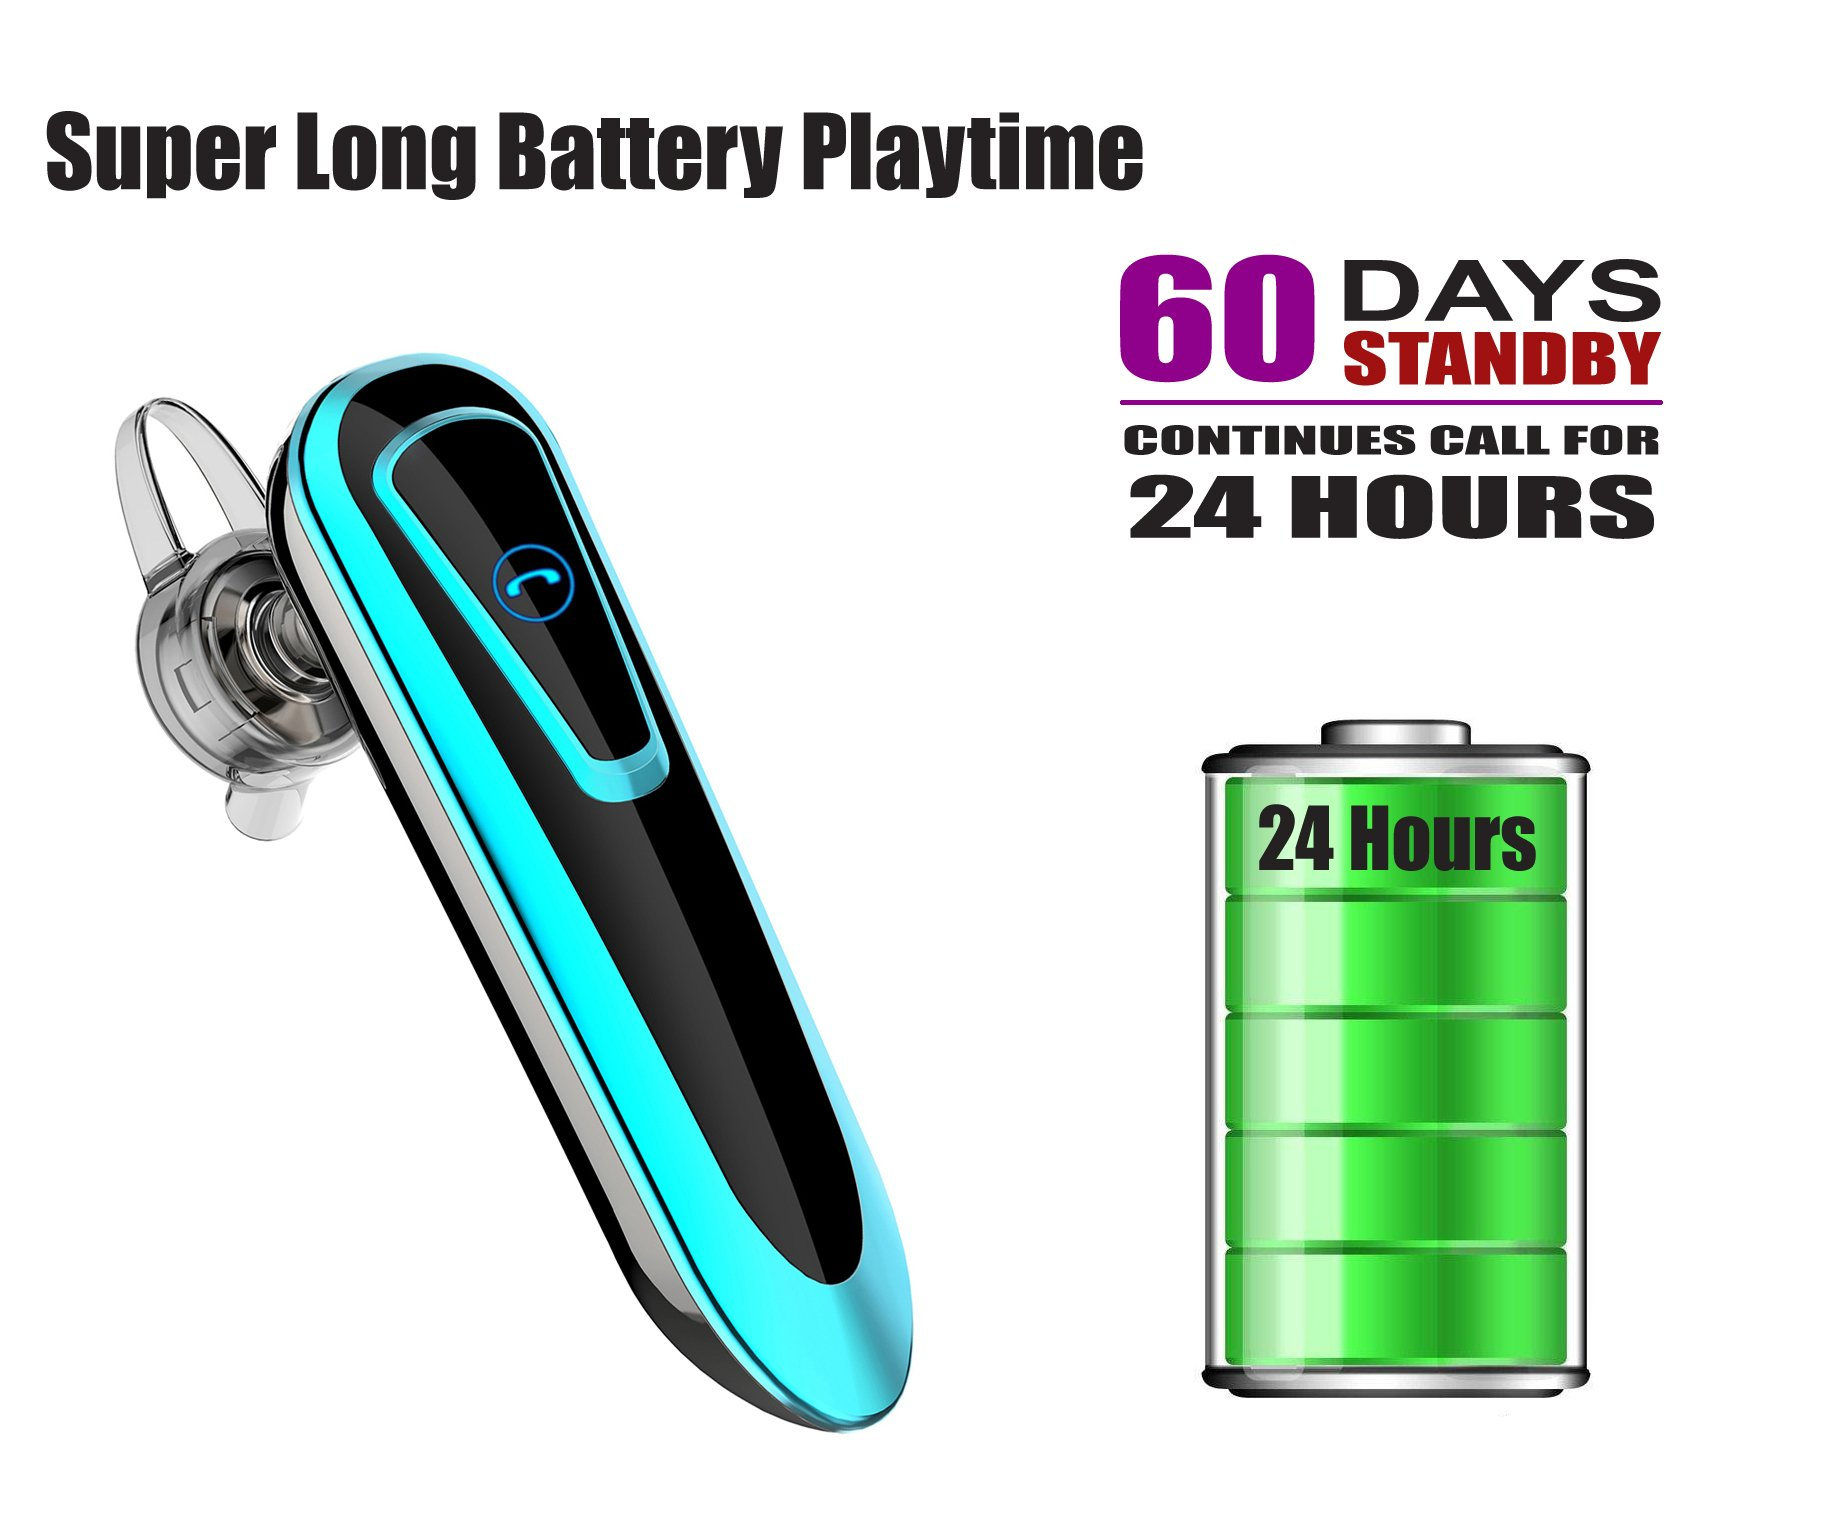 Bluetooth Earpiece Headsets for Safety Drive and Office Business, Car Speakerphone Handsfree, 24hour Long Battery Playtime Earbuds, In Ear Headphones with Microphone Noise Cancelling for Taxi Uber by BilmiX (Image #3)